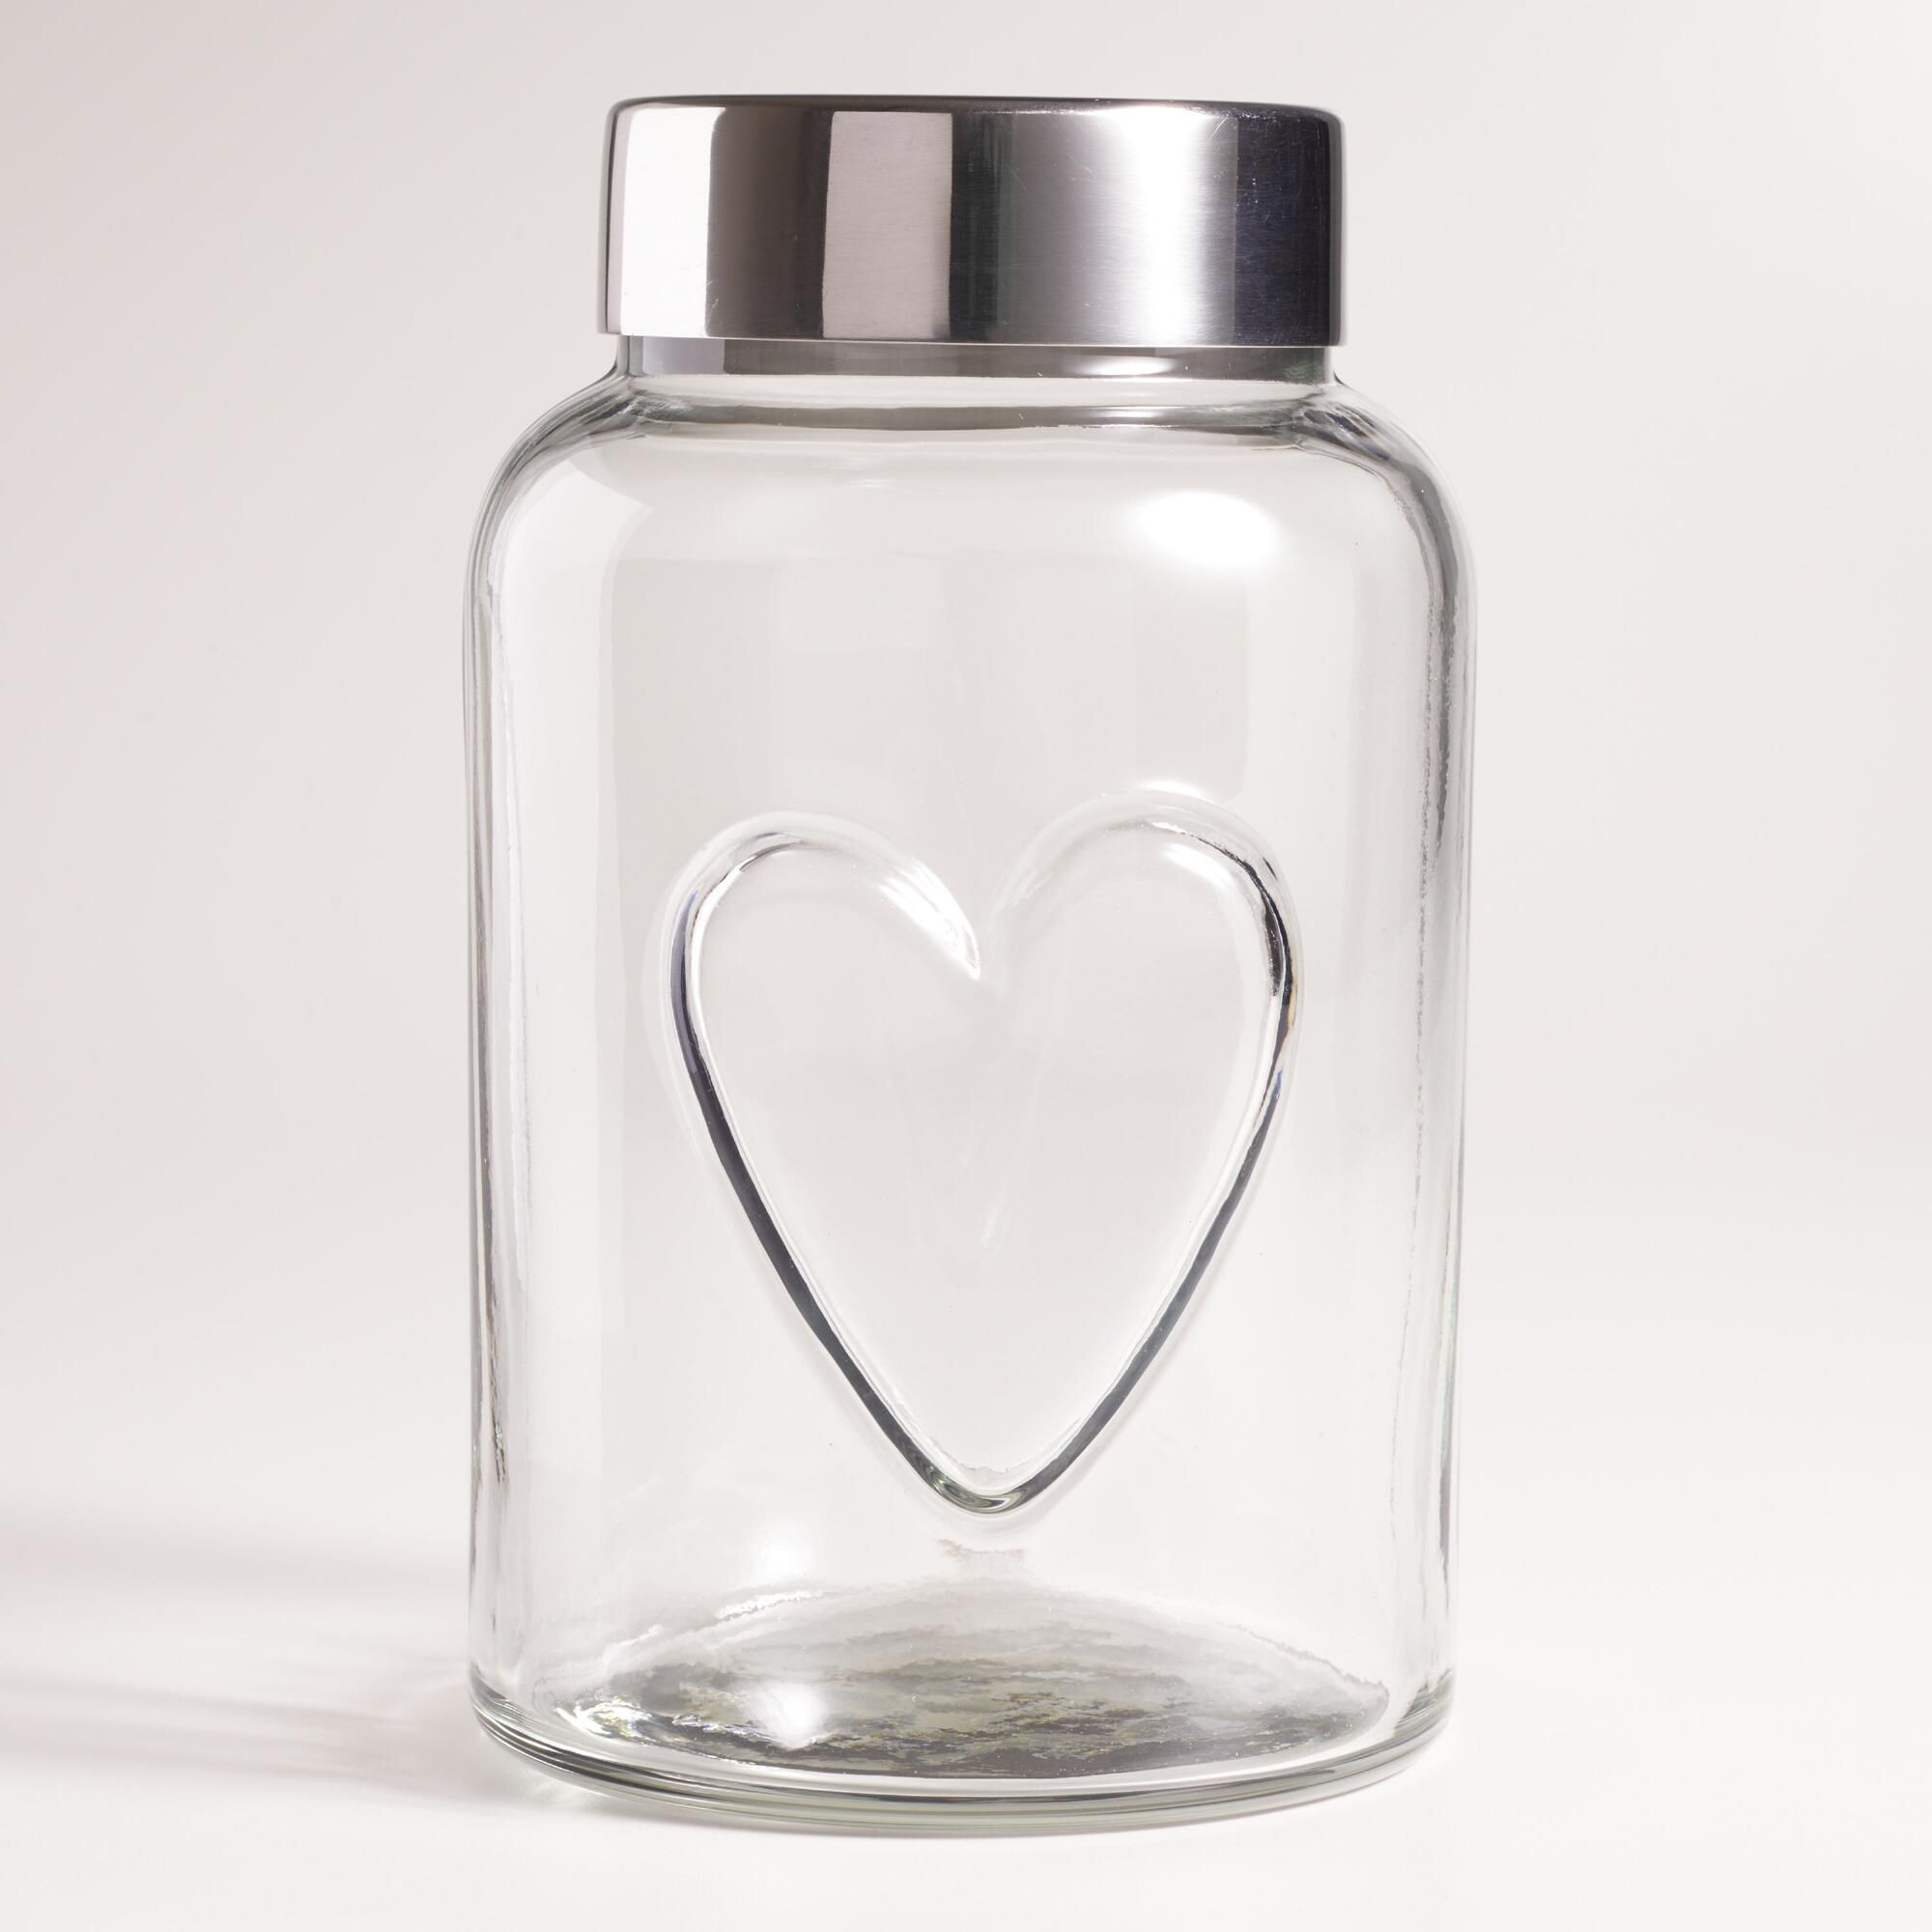 Airtight Cookie Jar New Made Of Glass With An Embossed Heart Our Retrostyle Storage Jar Design Decoration